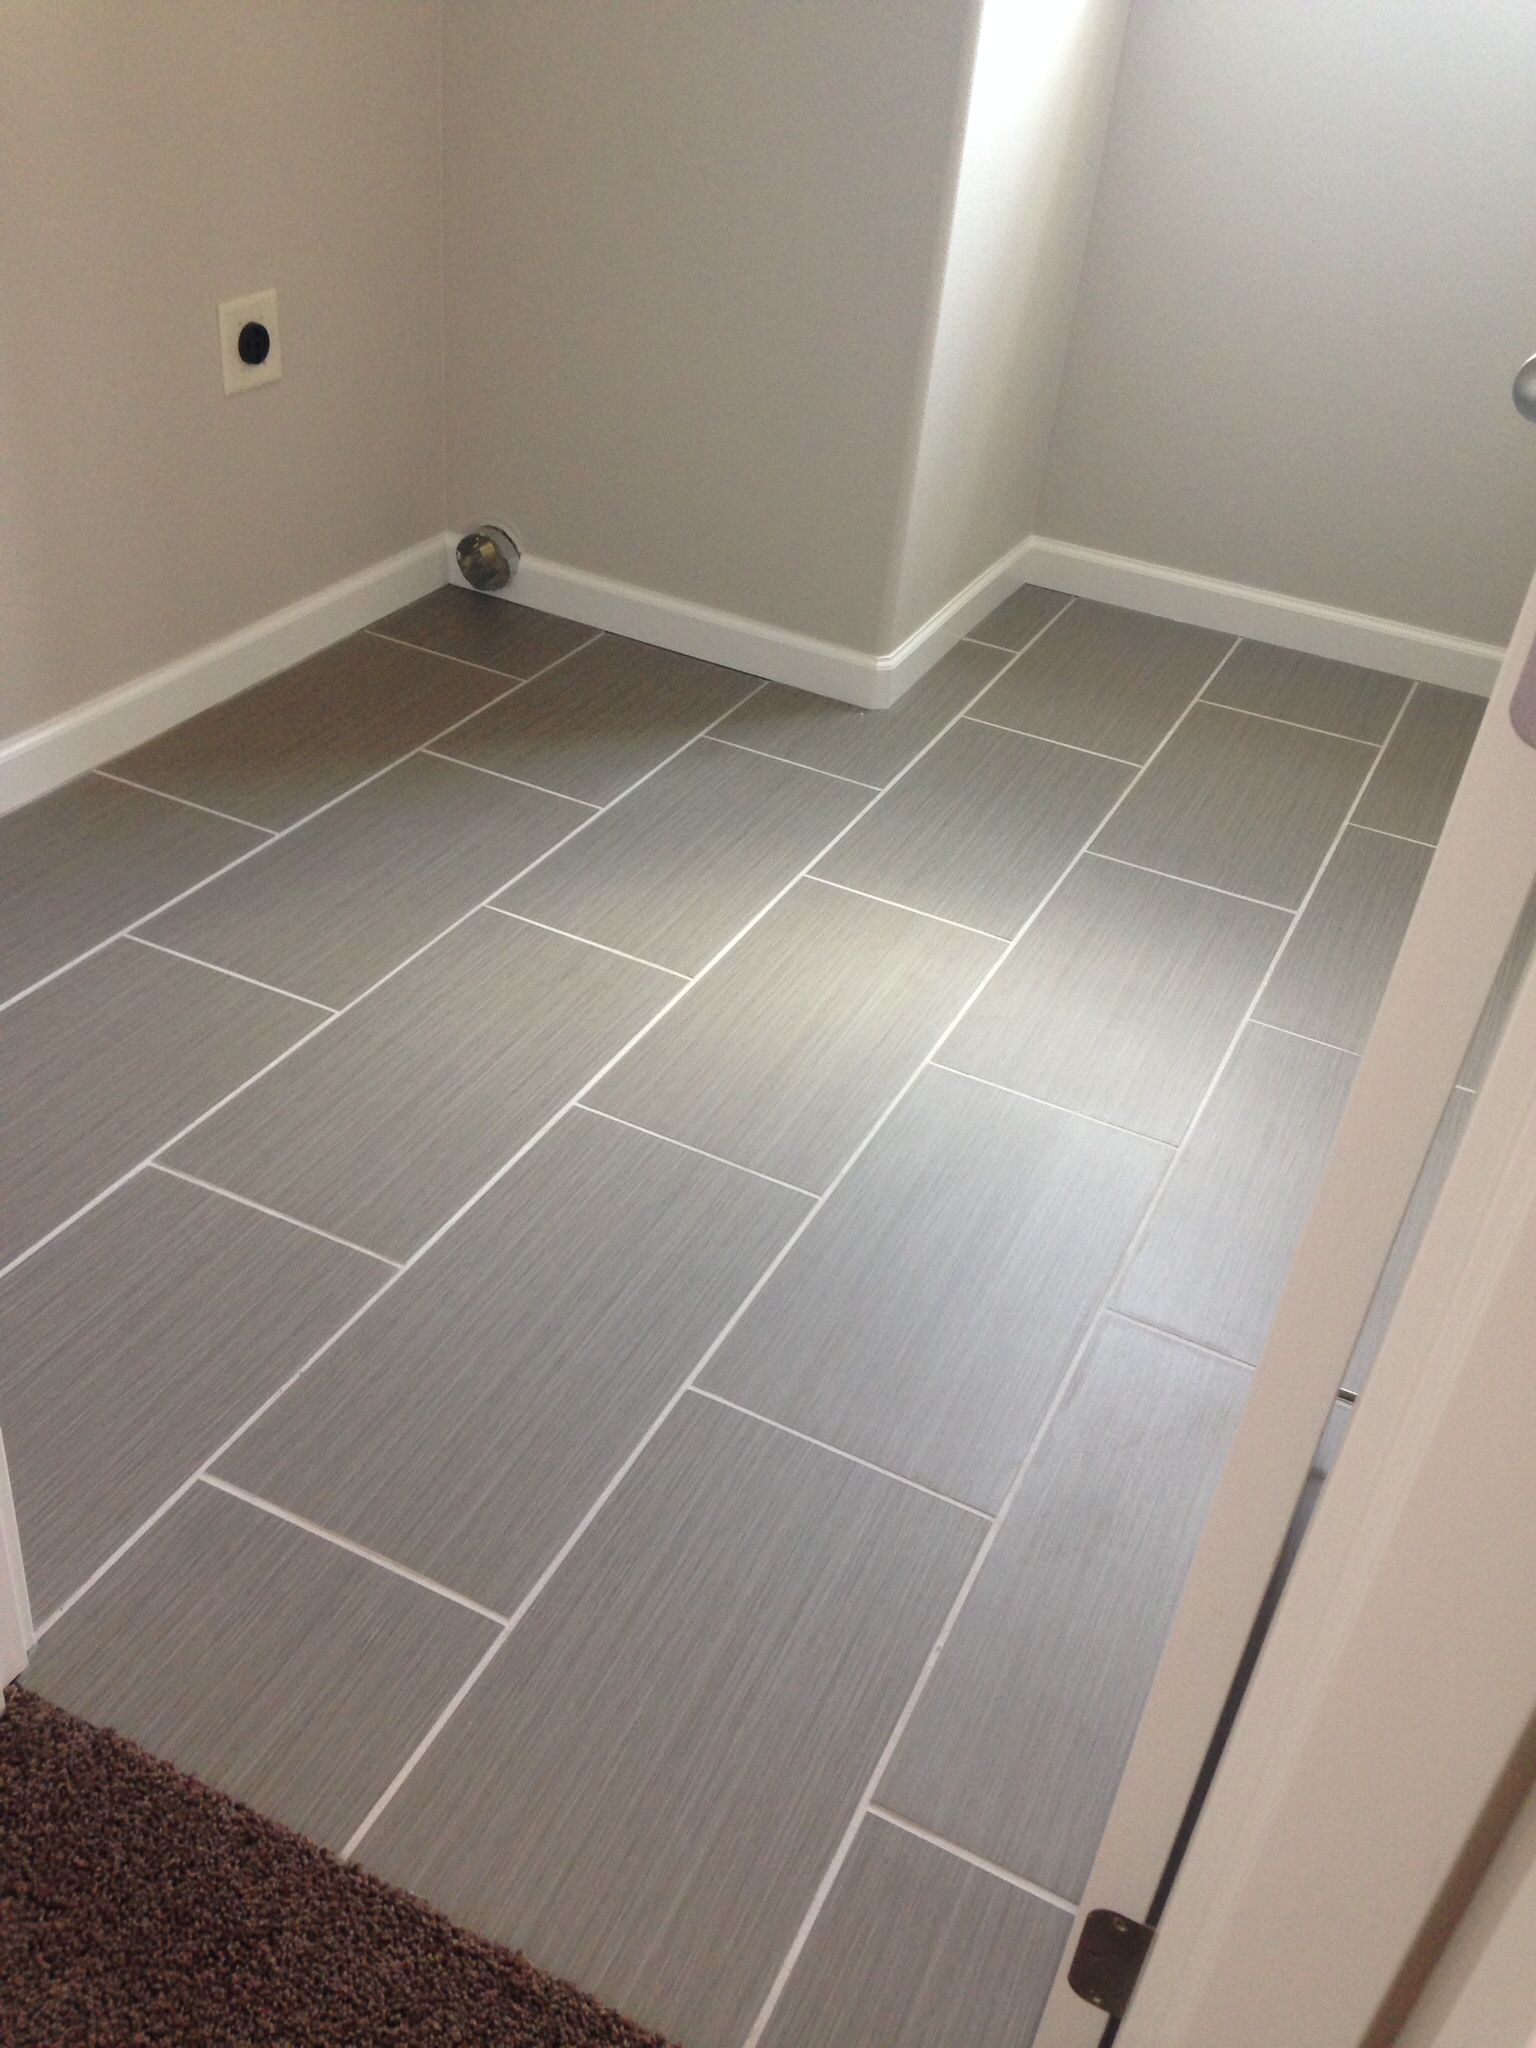 Grey Floor Tiles Bathroom Gray Tile From Costco 721343 Neo Tile 1 39 2 39 Porcelain Tile